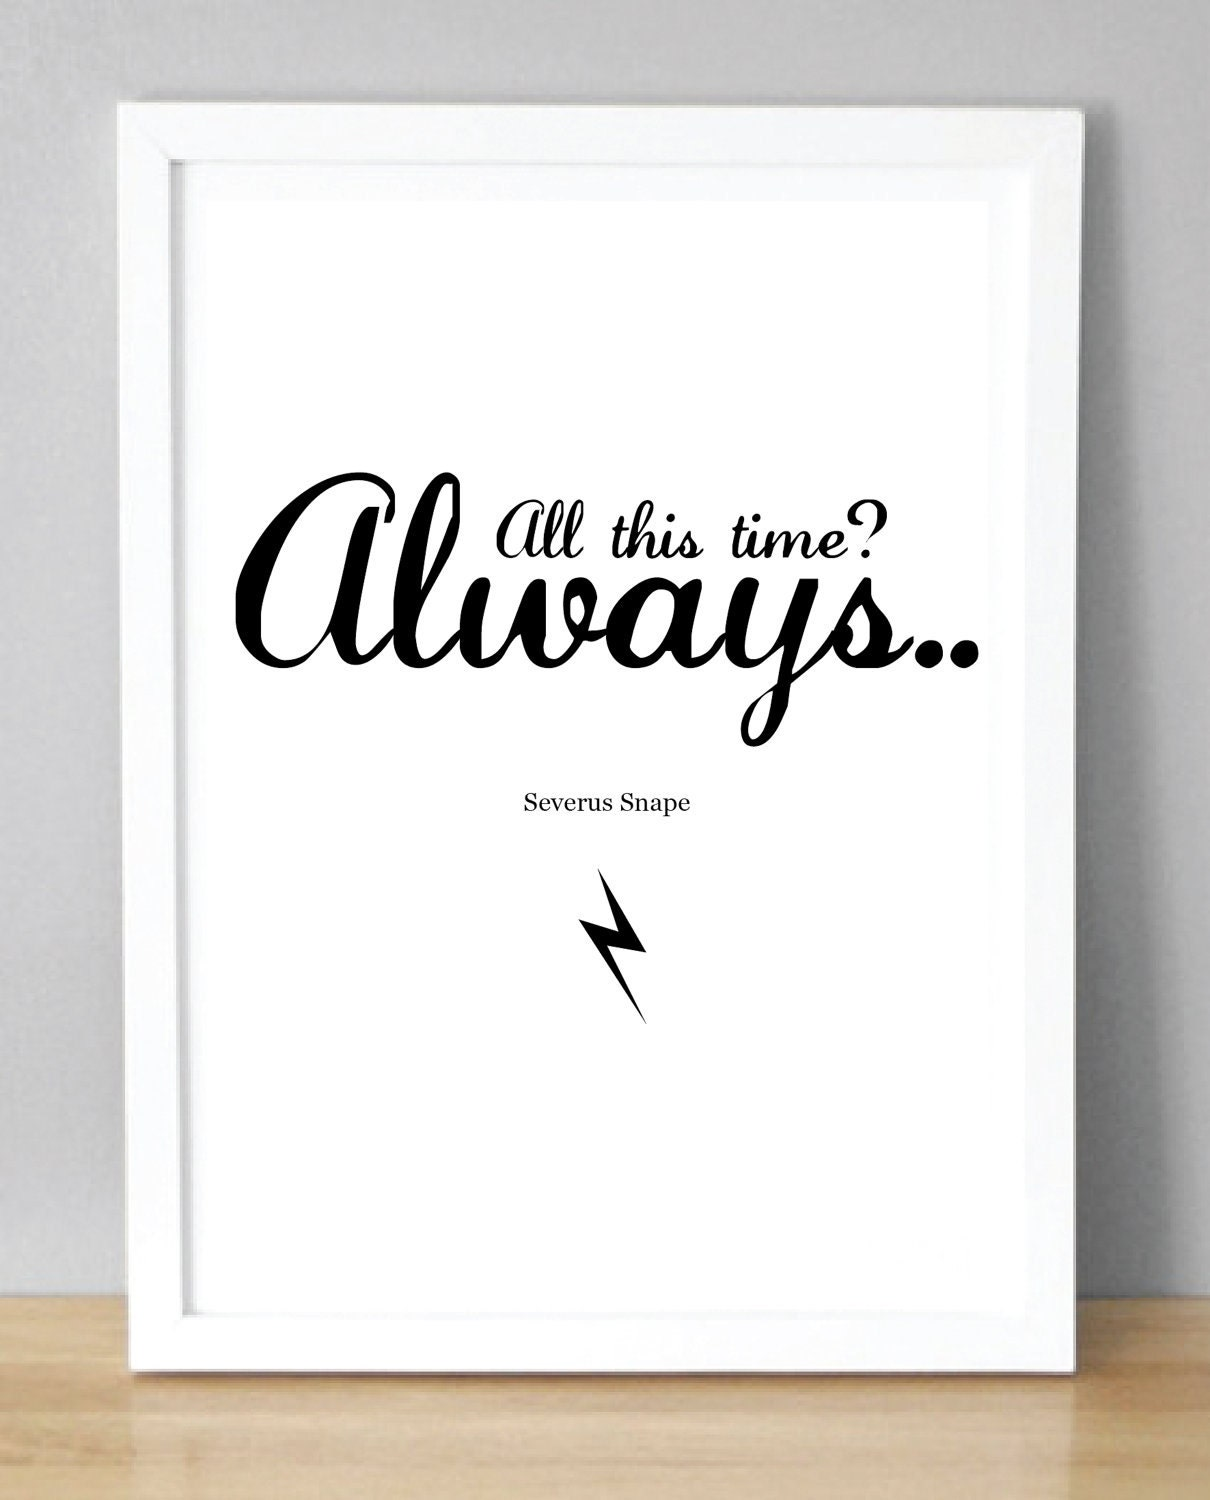 harry potter print severus snape always a5 by company owner business card title founder title on business card - Business Card Titles